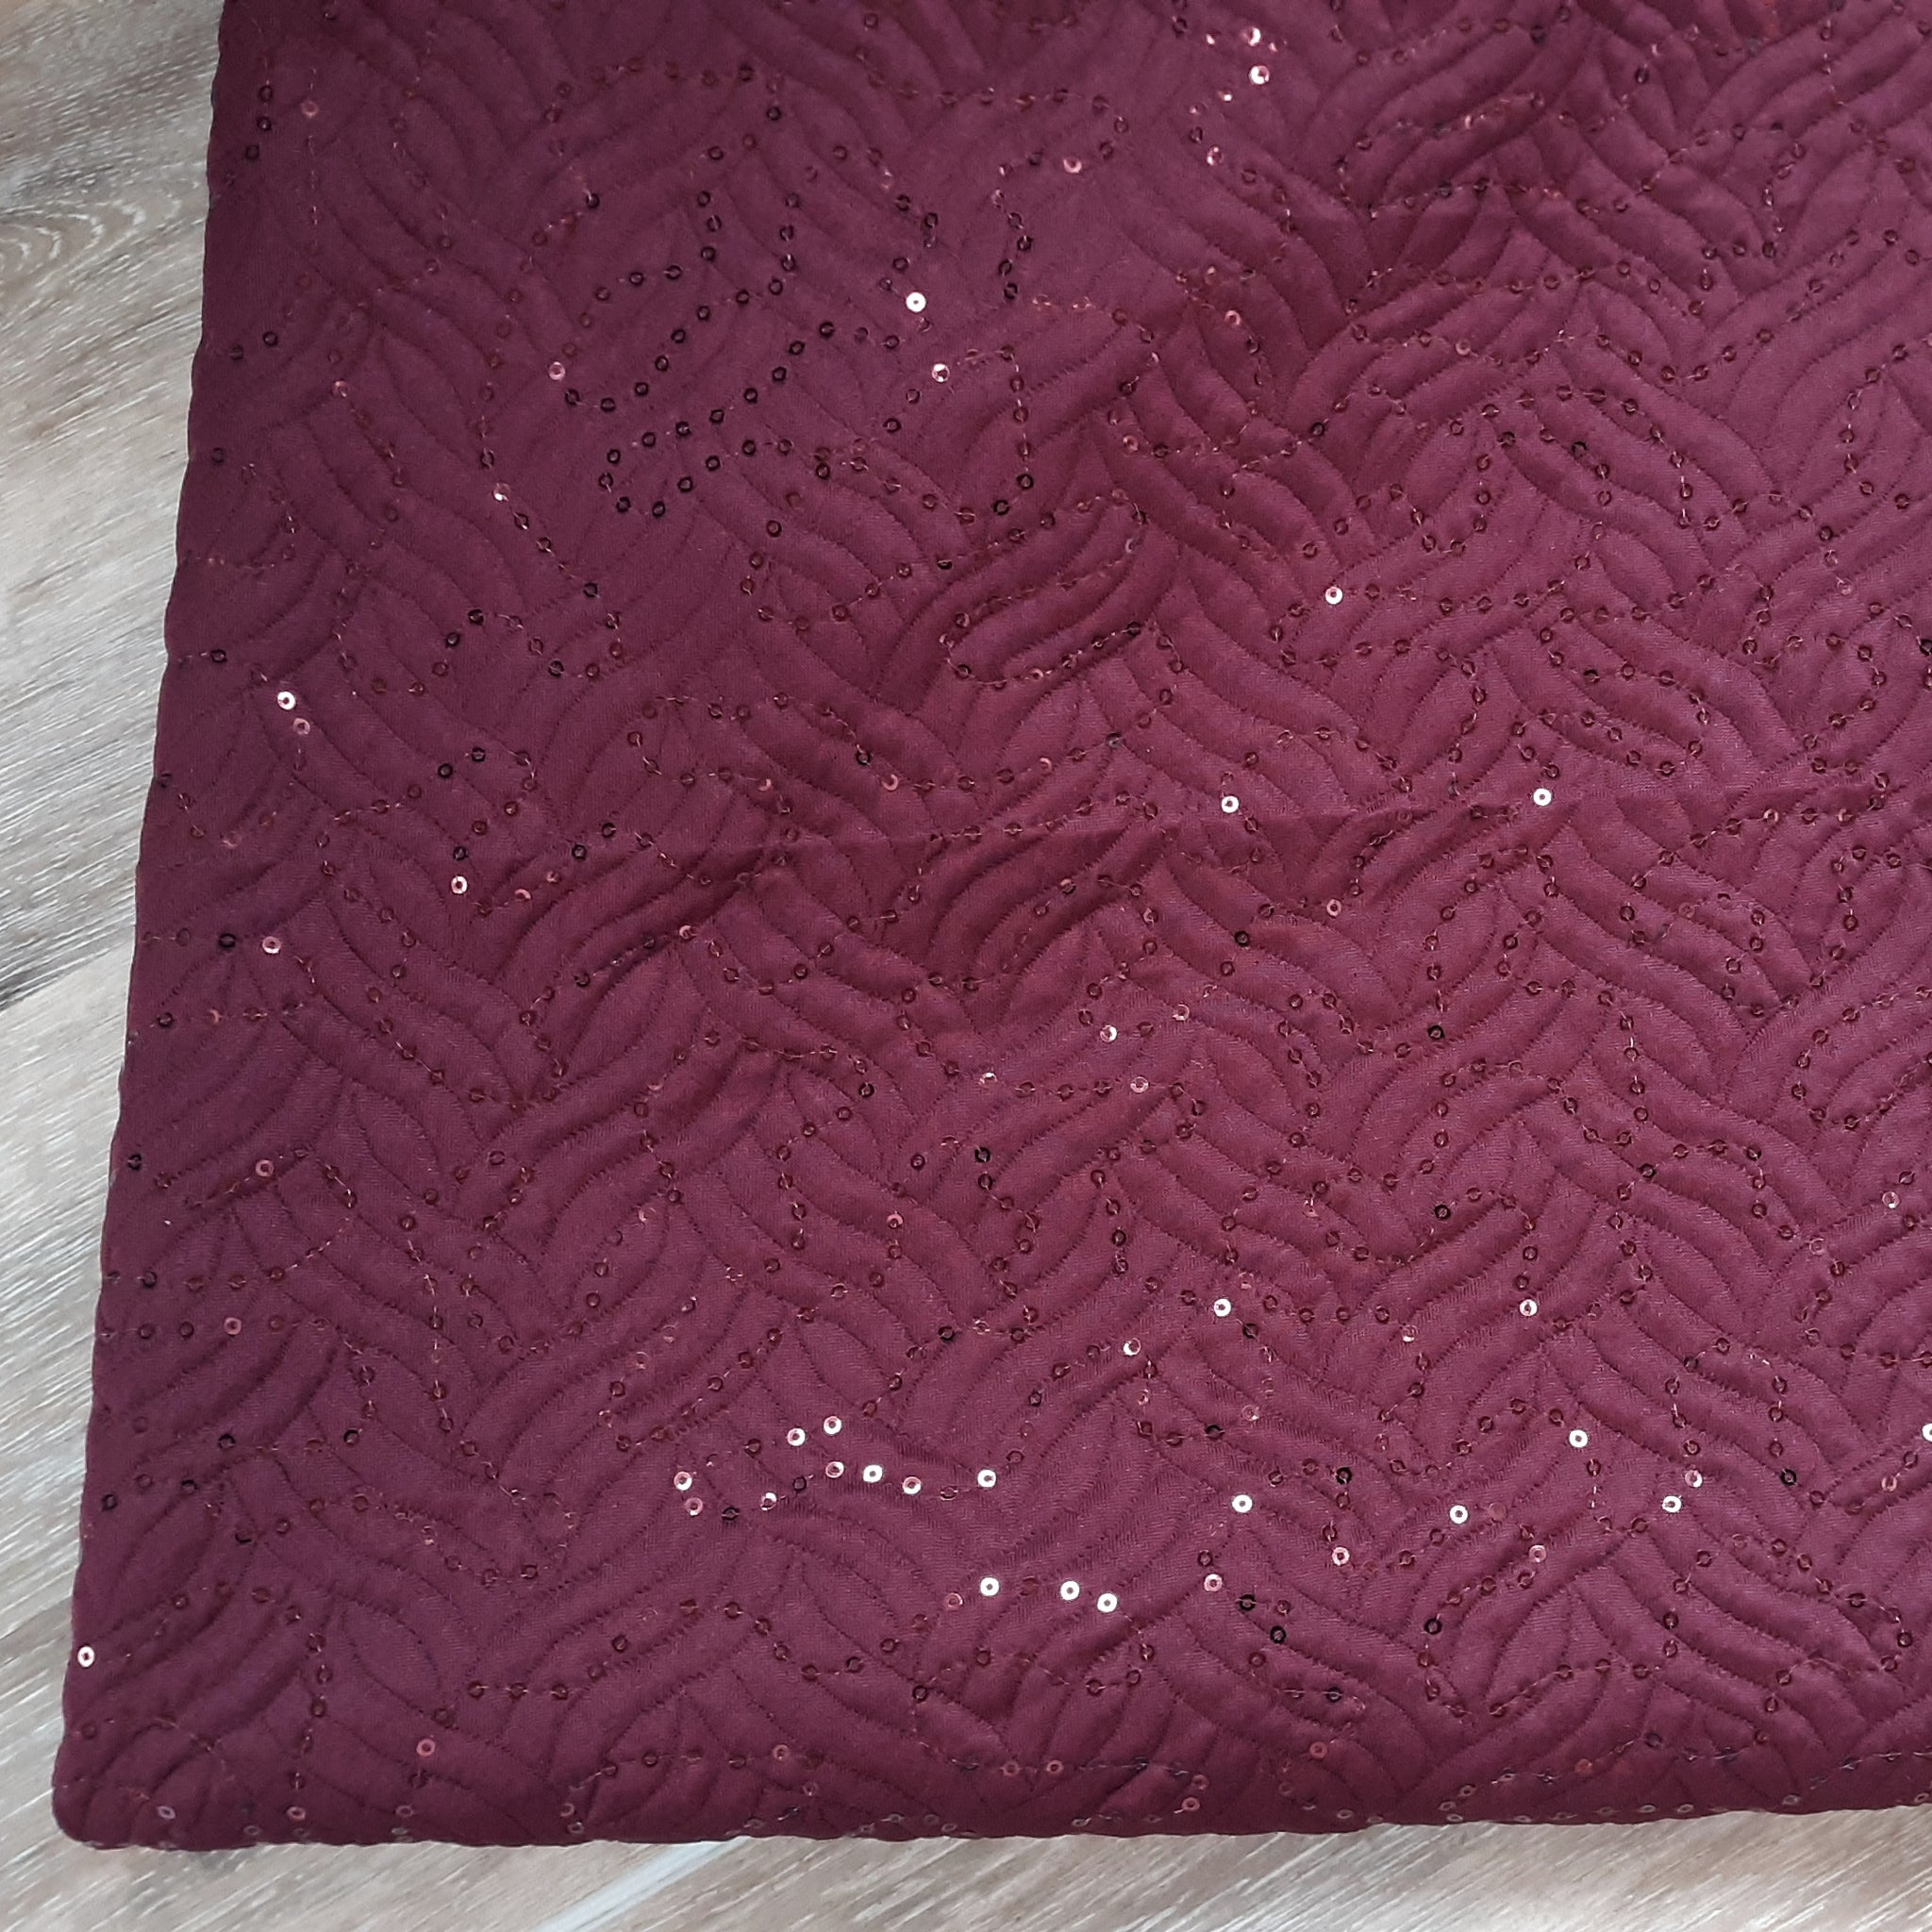 Burgundy With Sequins Knit|By the Half Yard|Solids